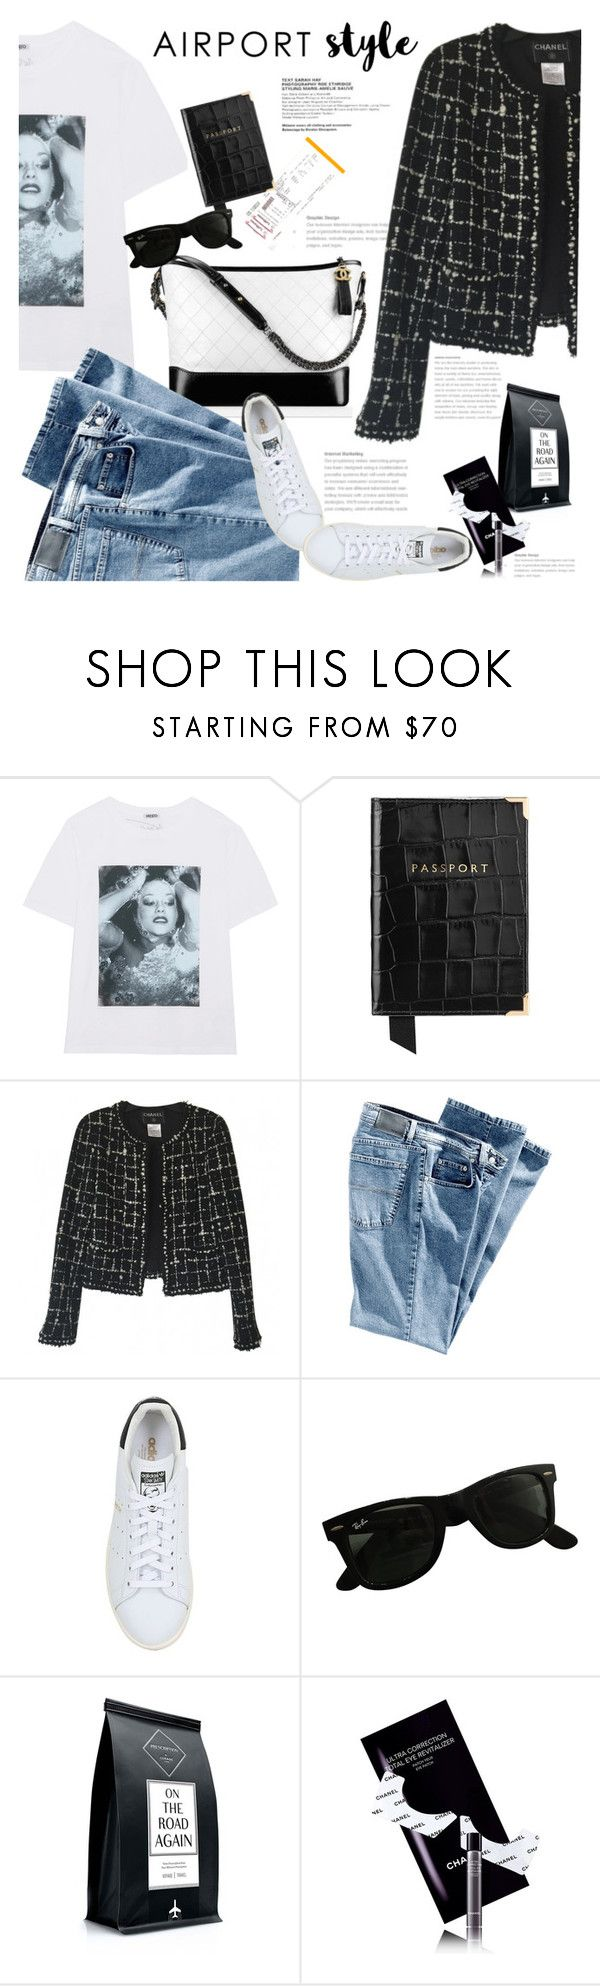 """""""Fly with style"""" by naki14 ❤ liked on Polyvore featuring Kenzo, Chanel, Spitfire, Aspinal of London, adidas Originals, Ray-Ban, Codage, travel, vacation and HowToWear"""